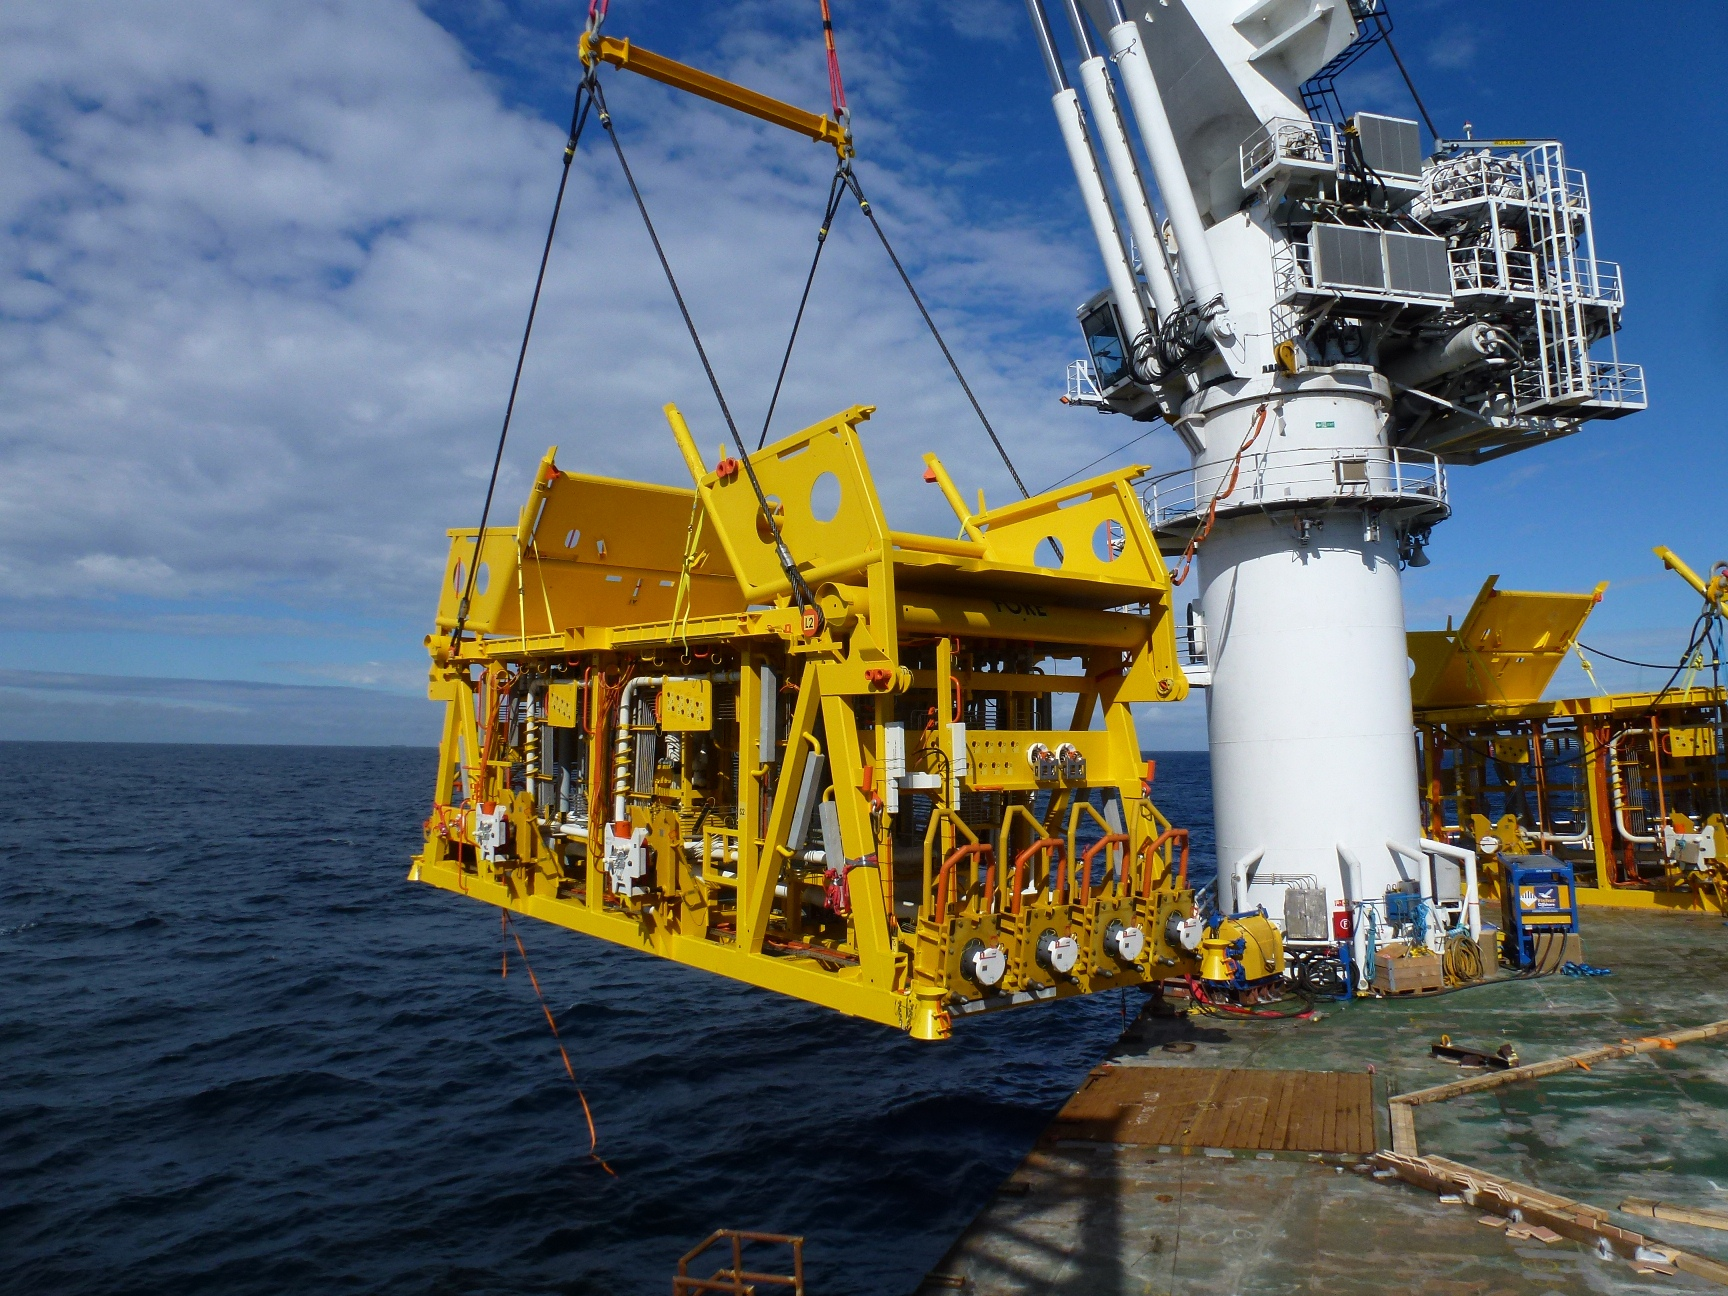 Modulift Subsea Spreader Beam lifting an instalment of a subsea heavy-oil rig